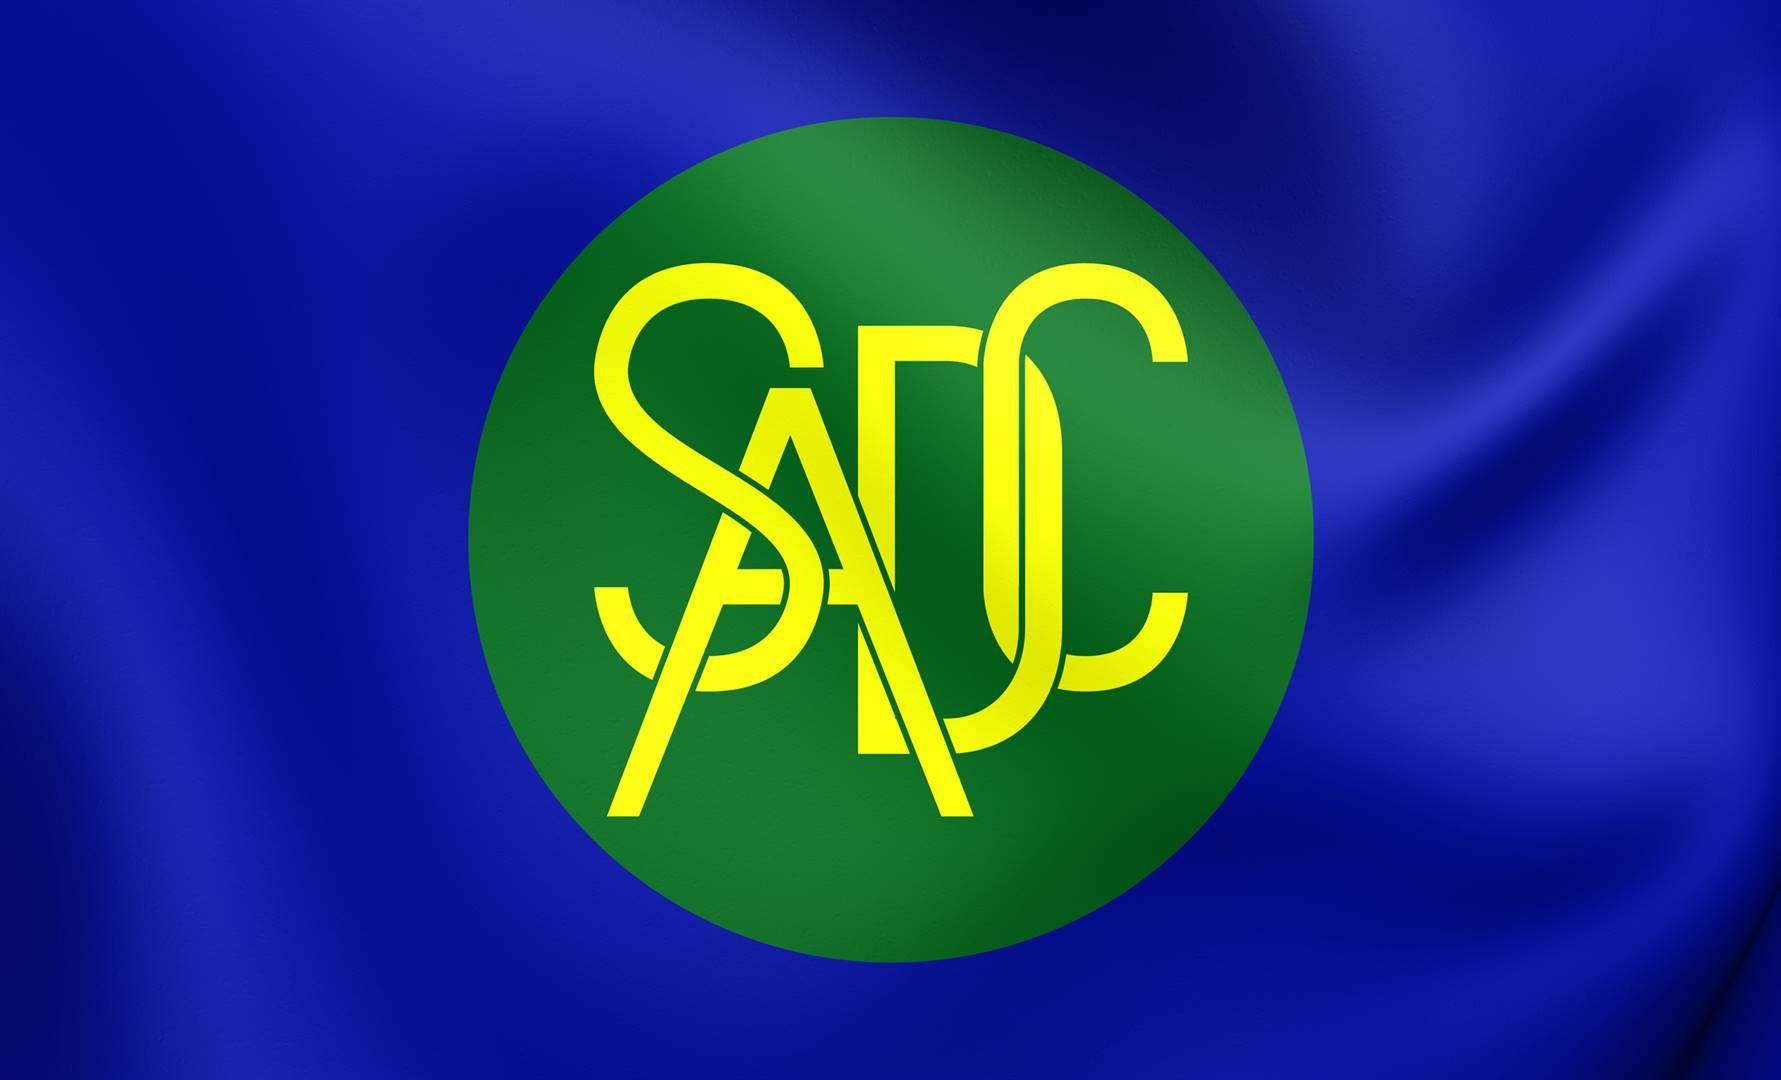 Flag of the Southern African Development Community. Picture: iStock/Gallo Images